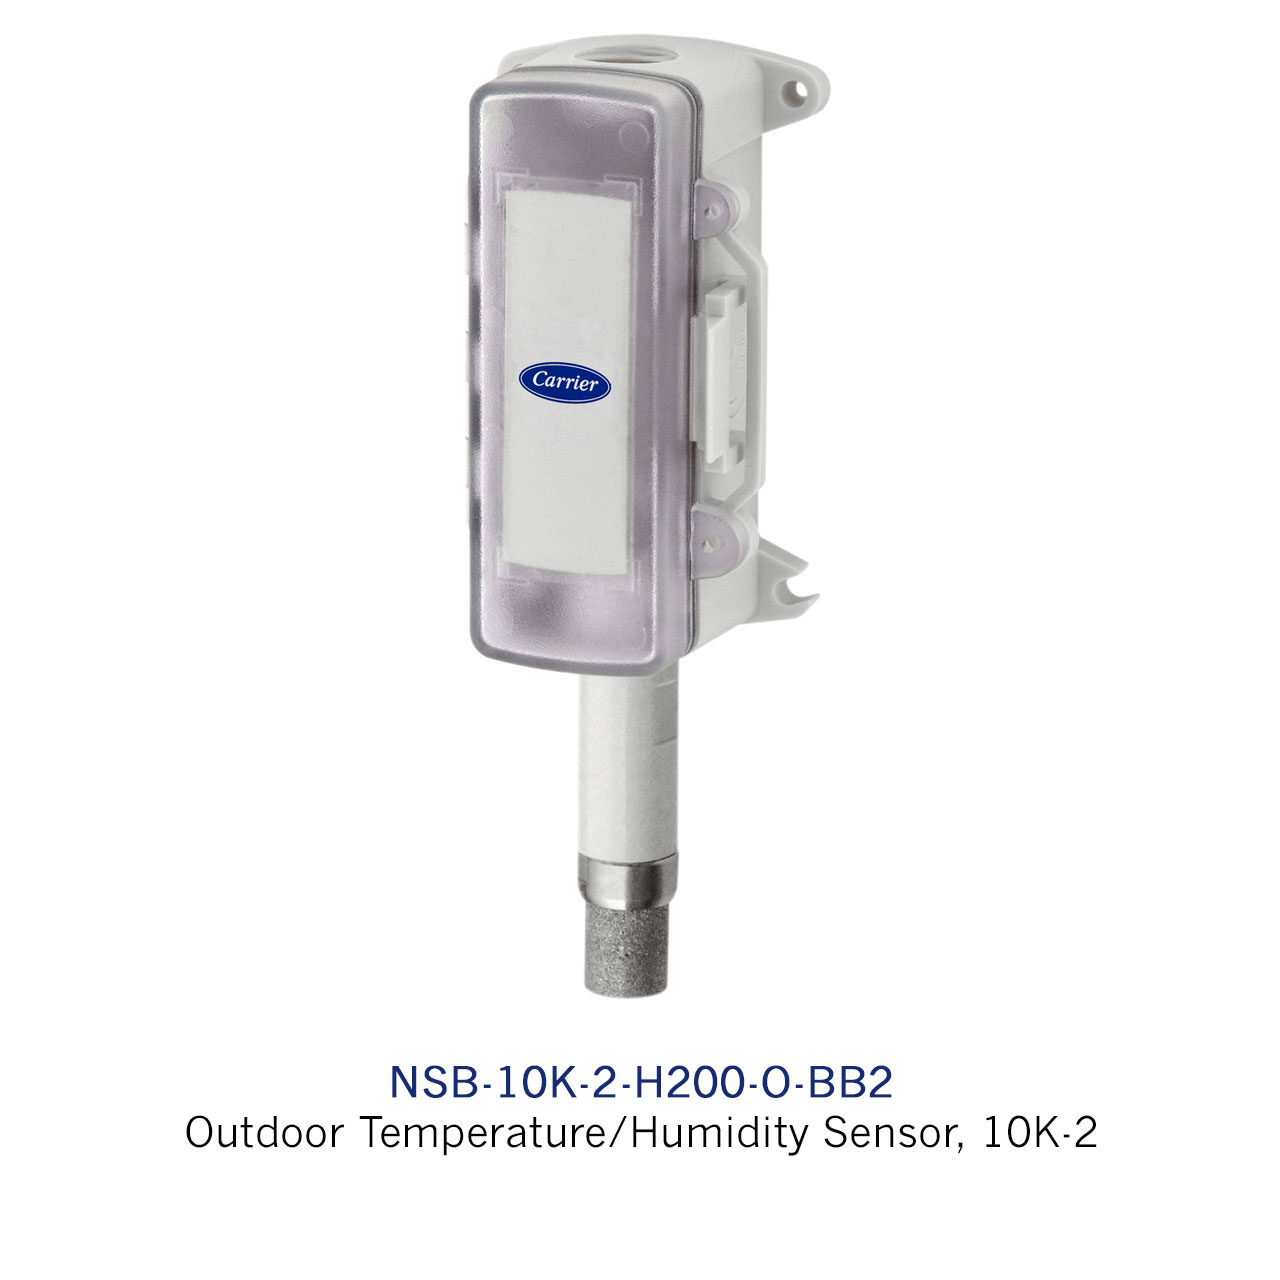 carrier-NSB-10K-2-O-BB2-outdoor-temp-sensor